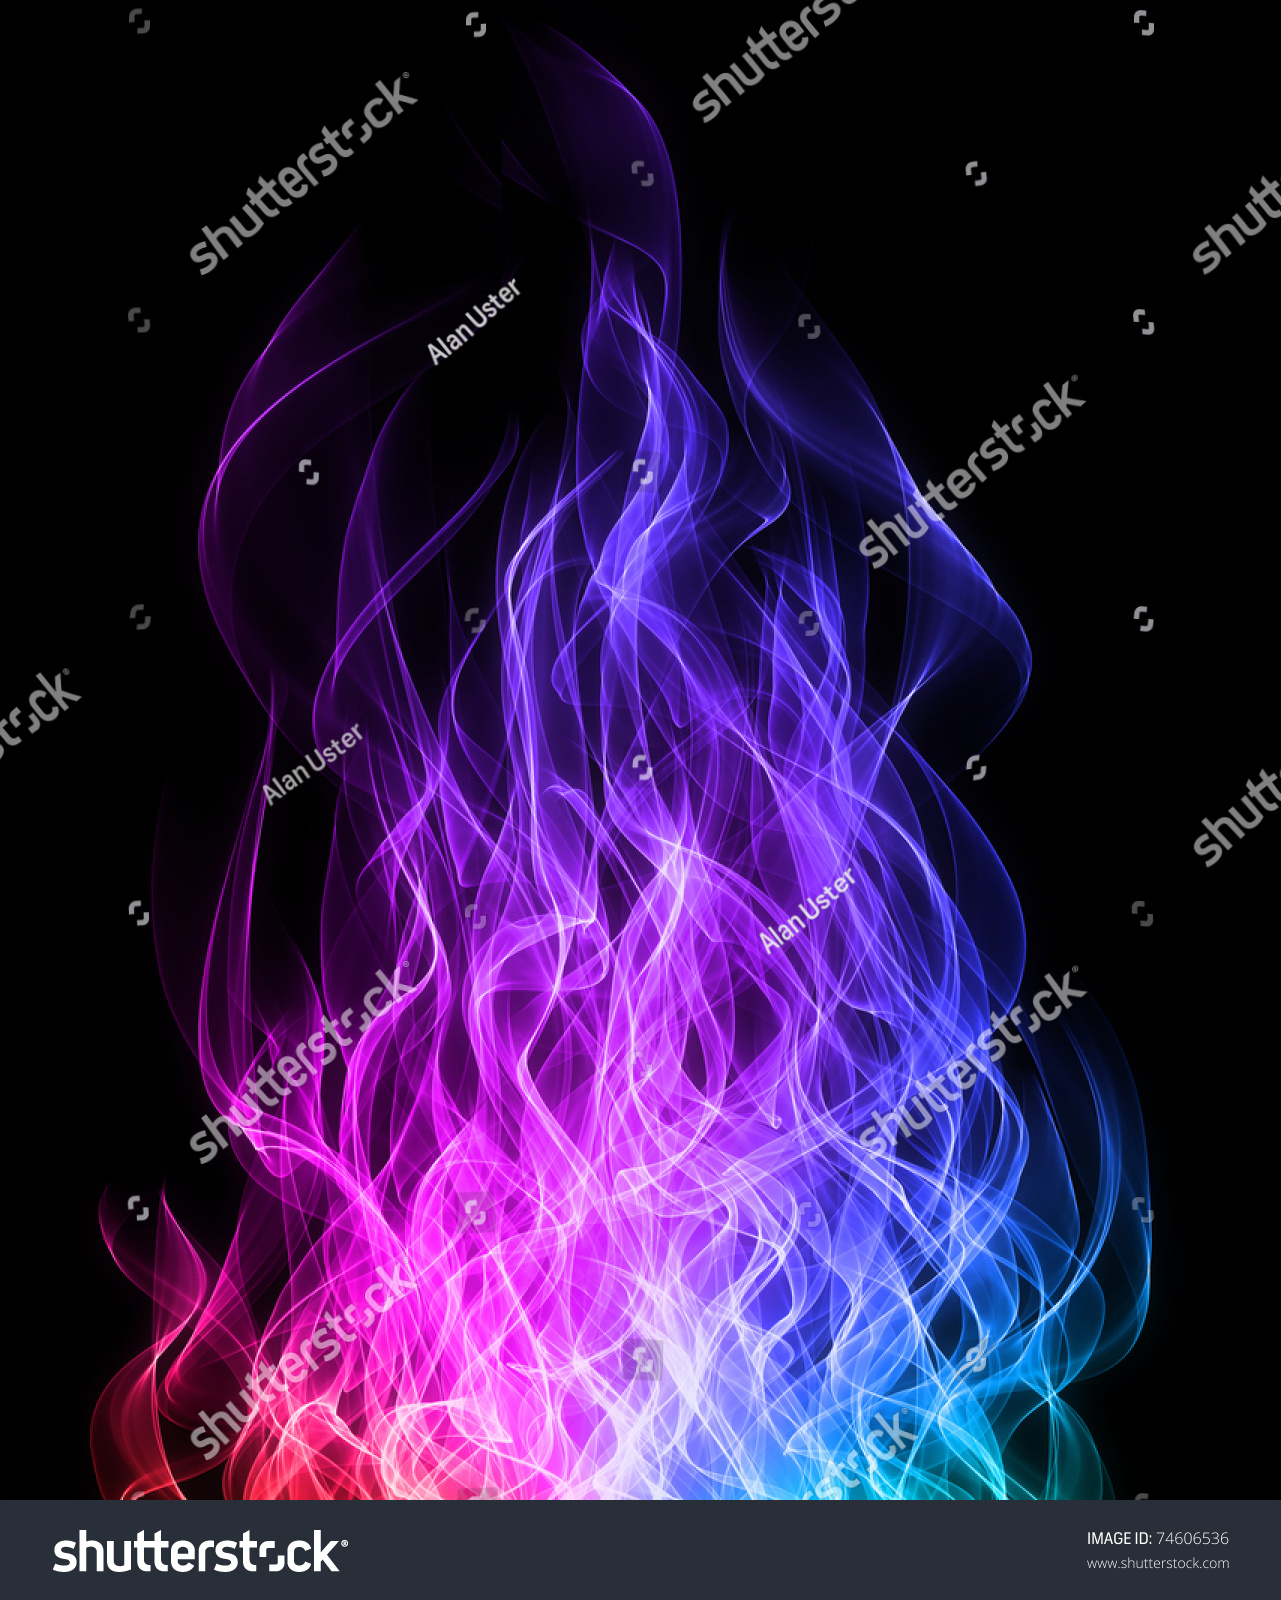 rainbow fire background - photo #11